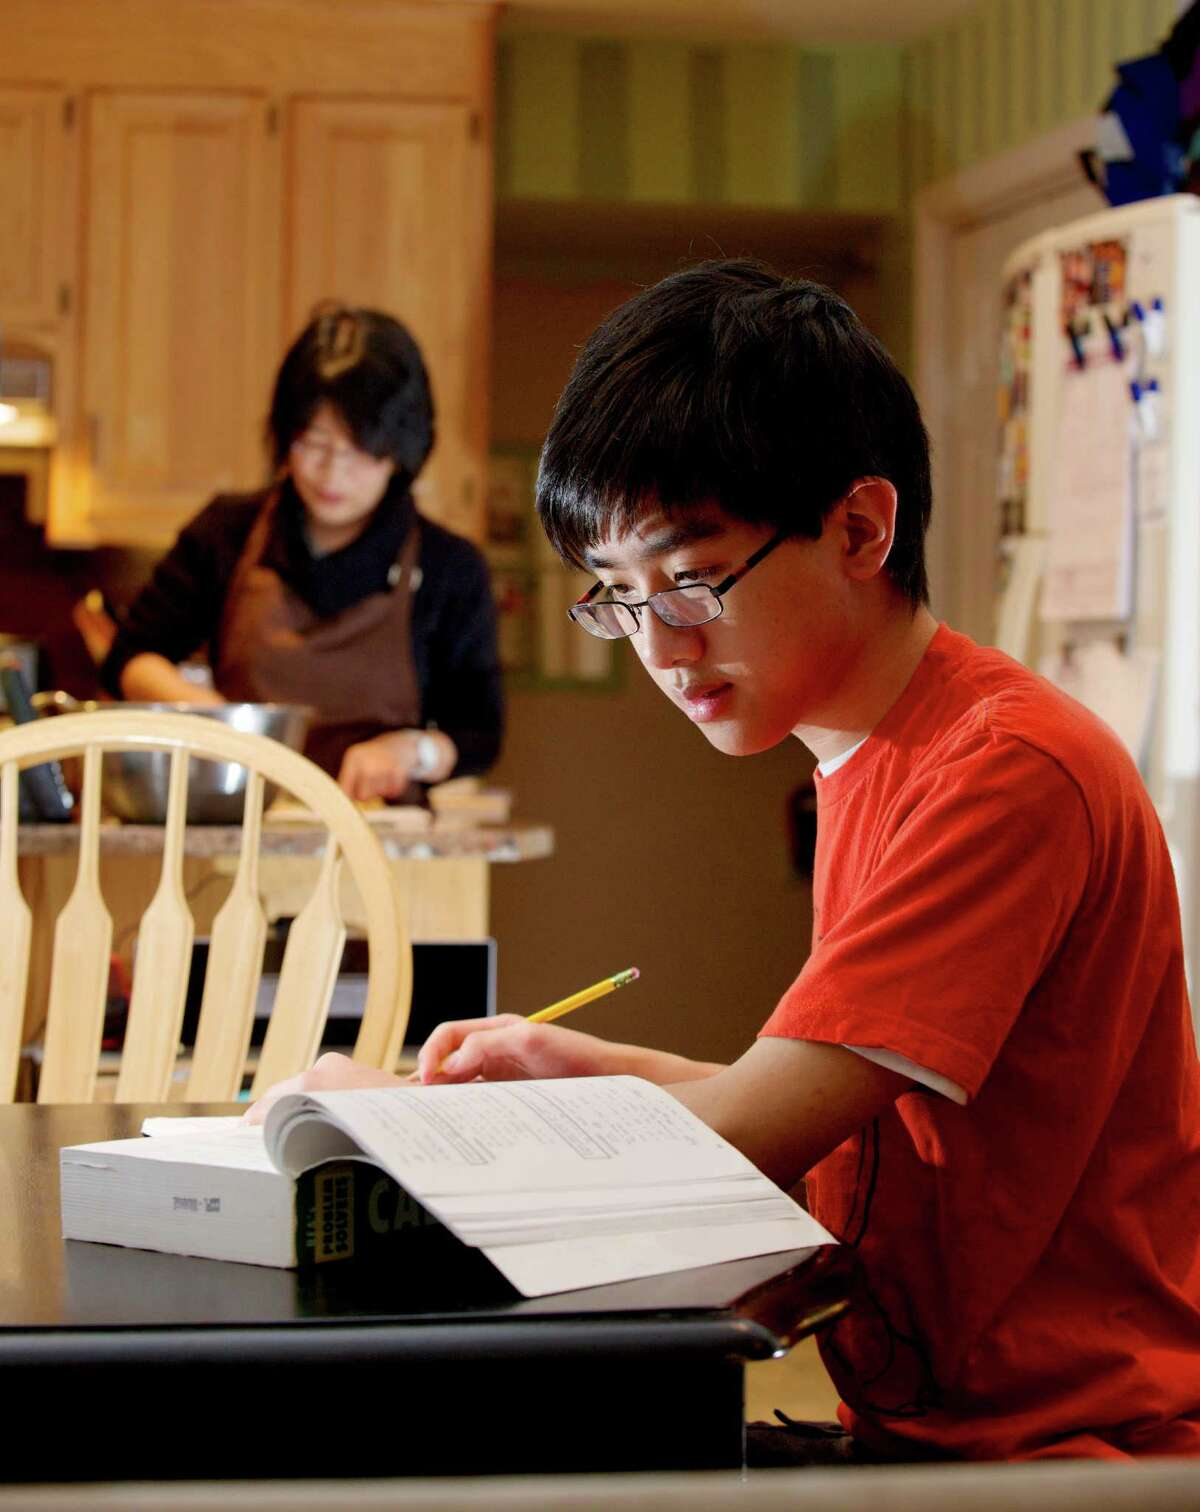 Howard Ho, 18, works on his calculus while his mother Sandy Ho prepares dinner in their New Milford, Conn, home. Ho is home schooled and has been applying to colleges for the fall. He has already started taking classes at Western Connecticut State University. Tuesday, January 14, 2014.